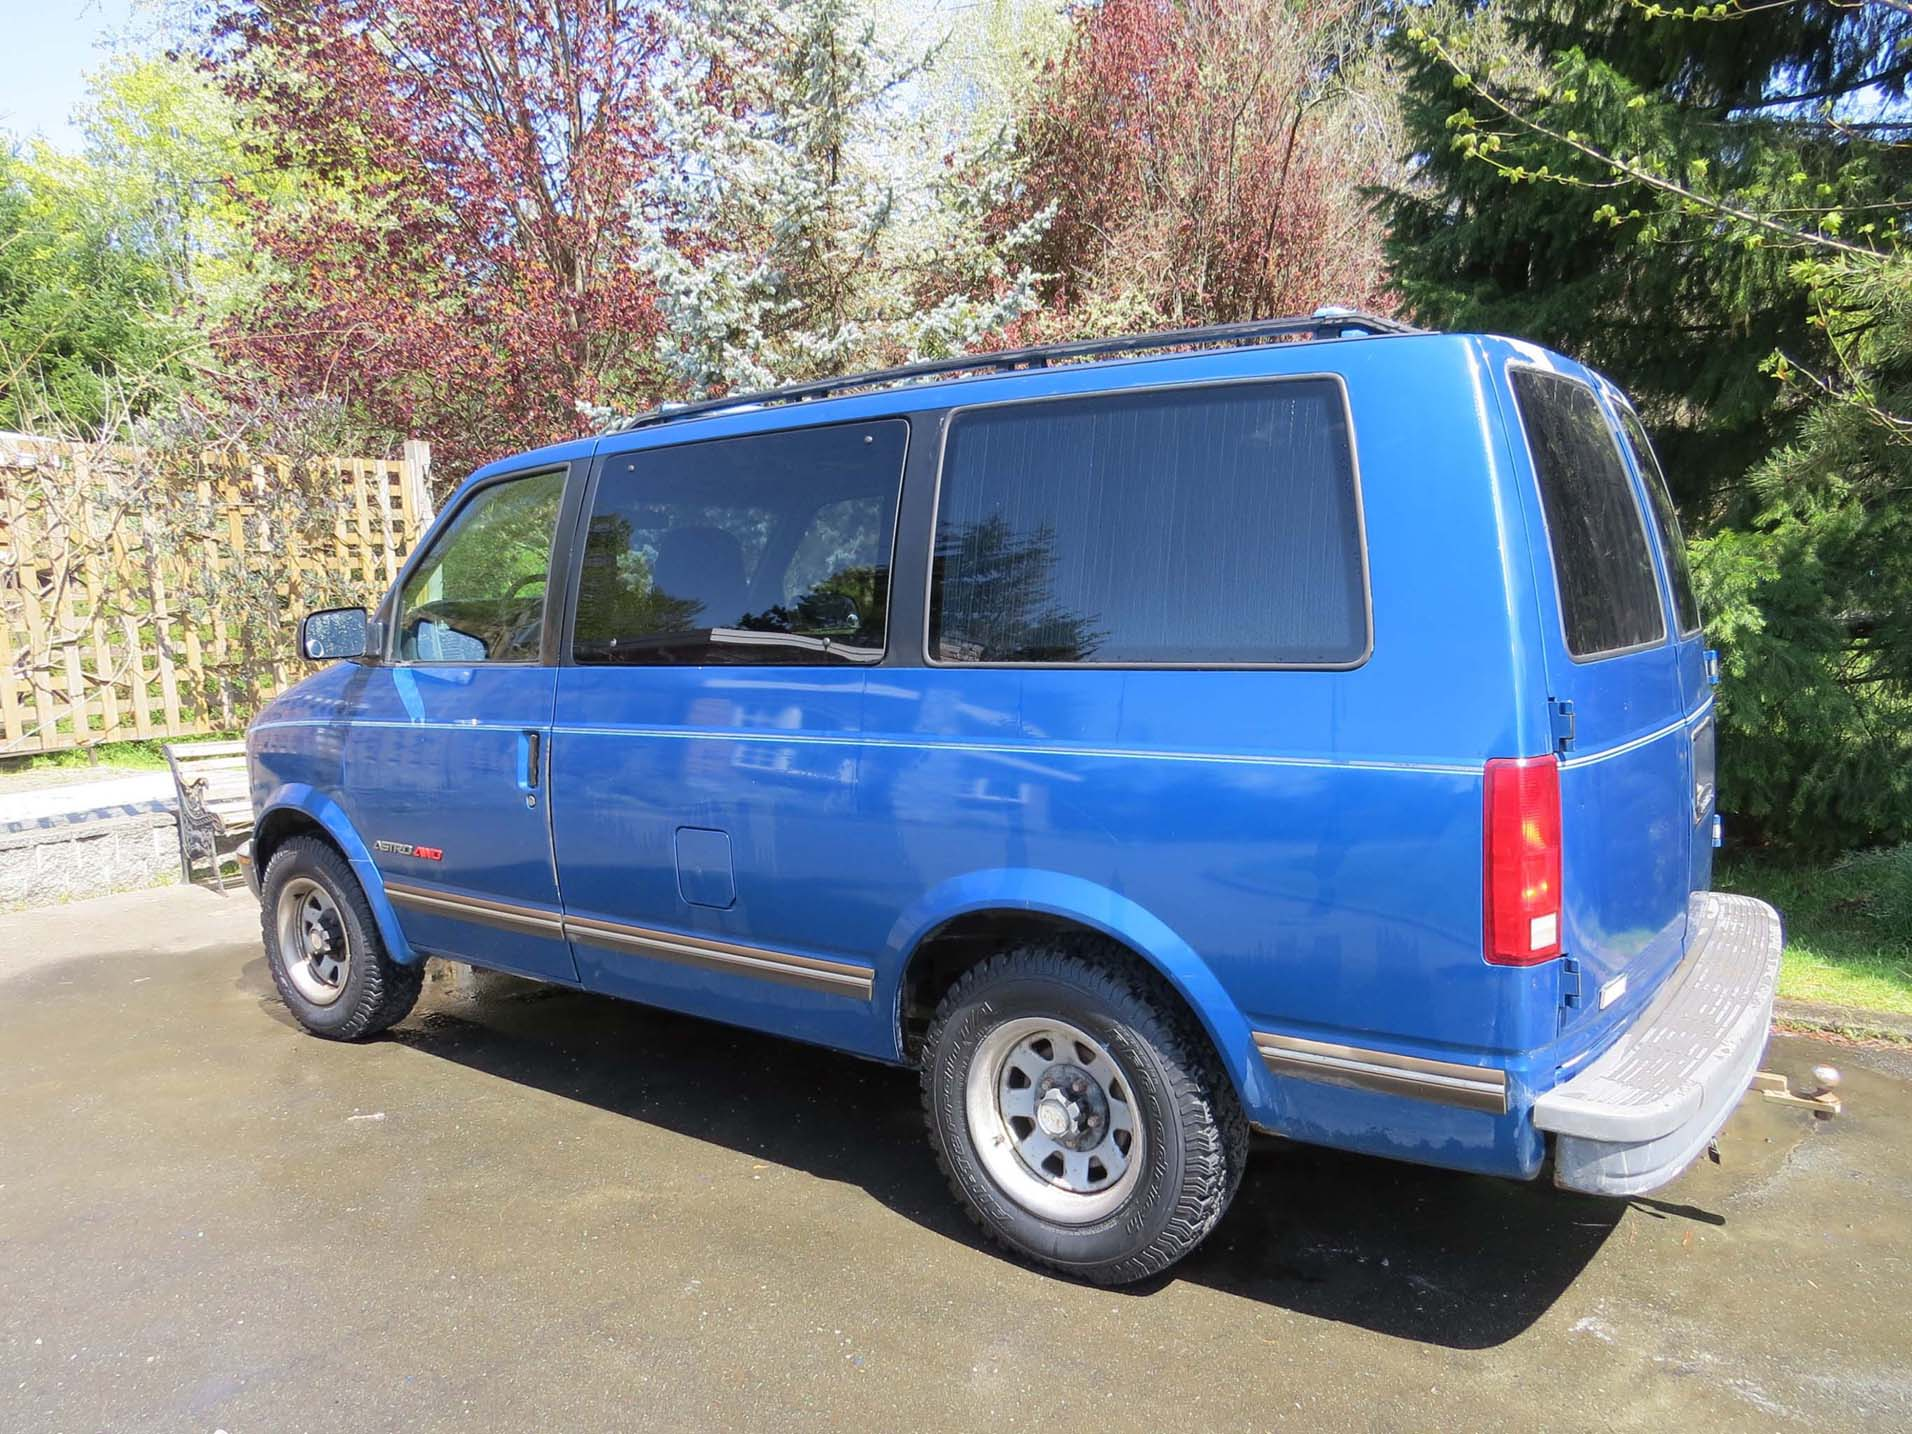 Converted Vans Astro Van Conversion Archives Off Track Travel